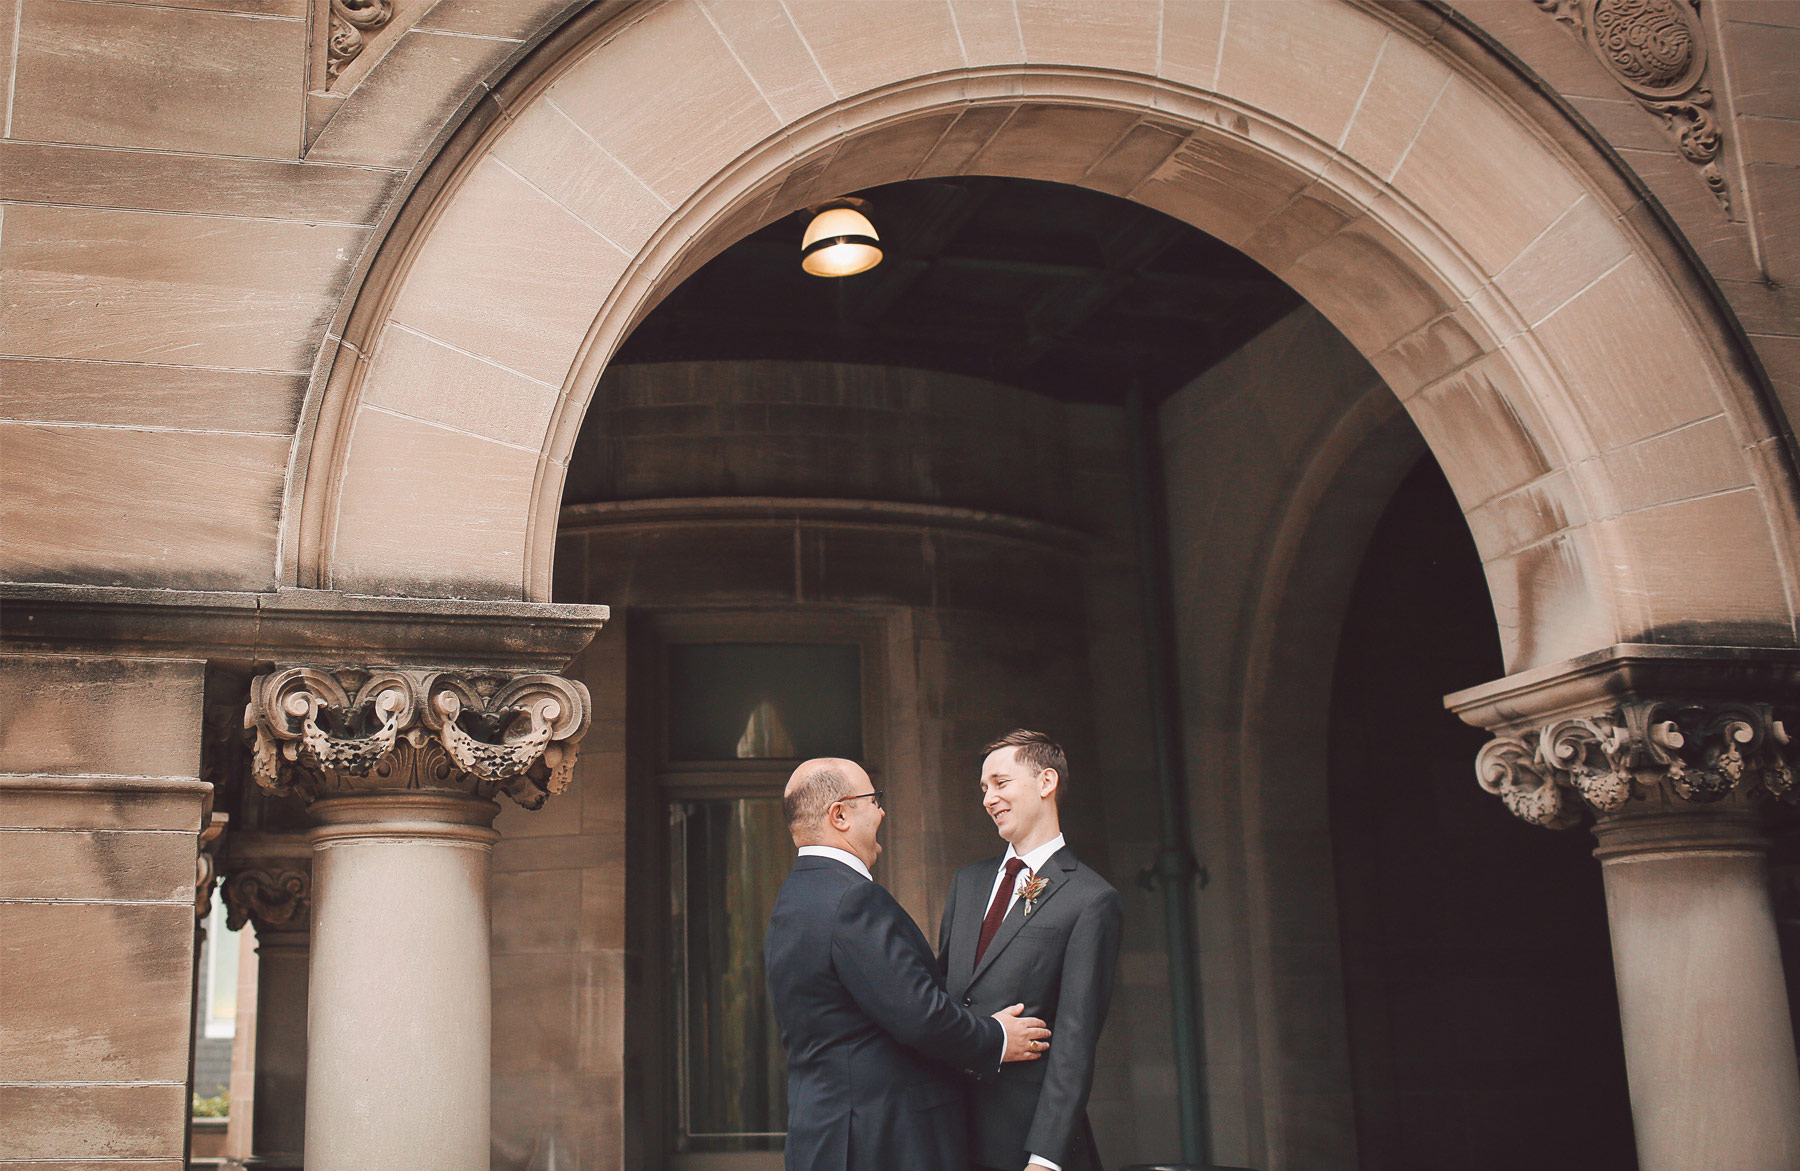 02-Minneapolis-Minnesota-Wedding-Photographer-by-Andrew-Vick-Photography-Fall-Autumn-American-Swedish-Institute-First-Meeting-Look-Groom-Vintage-Ben-and-Adam.jpg